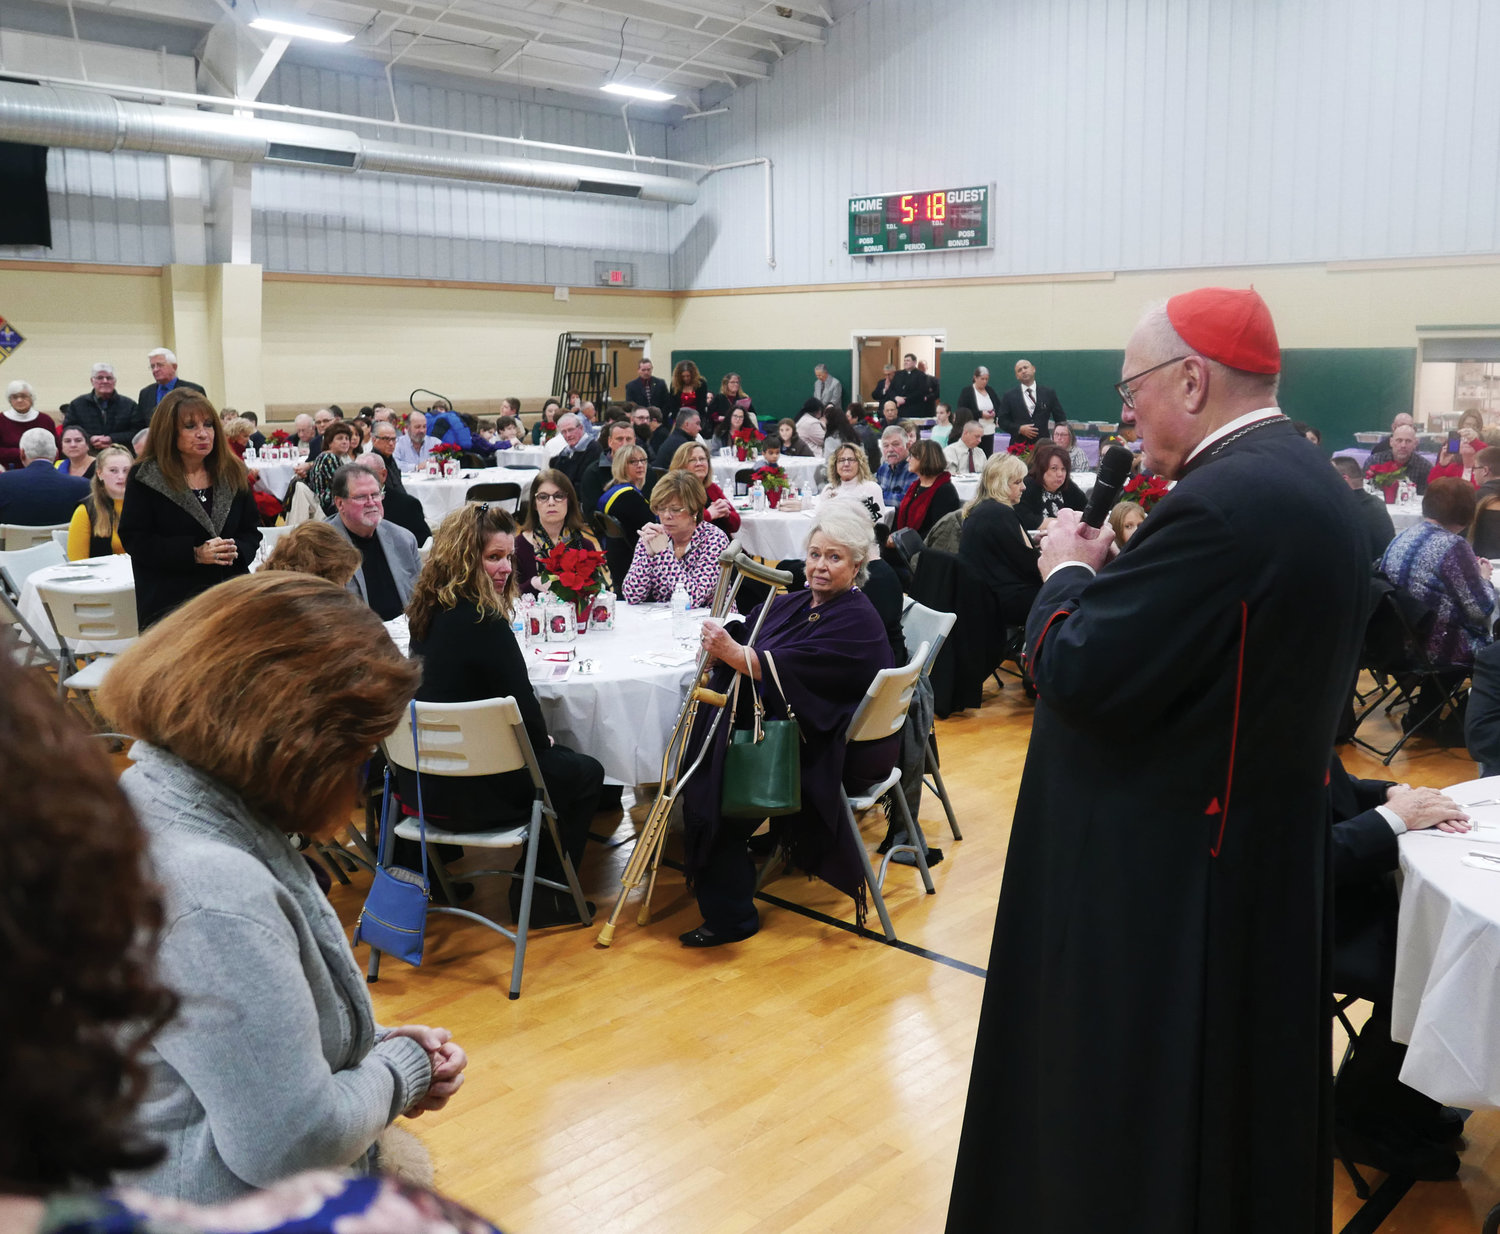 Cardinal Dolan leads prayer before a buffet meal is served at a reception in the parish center following Mass.